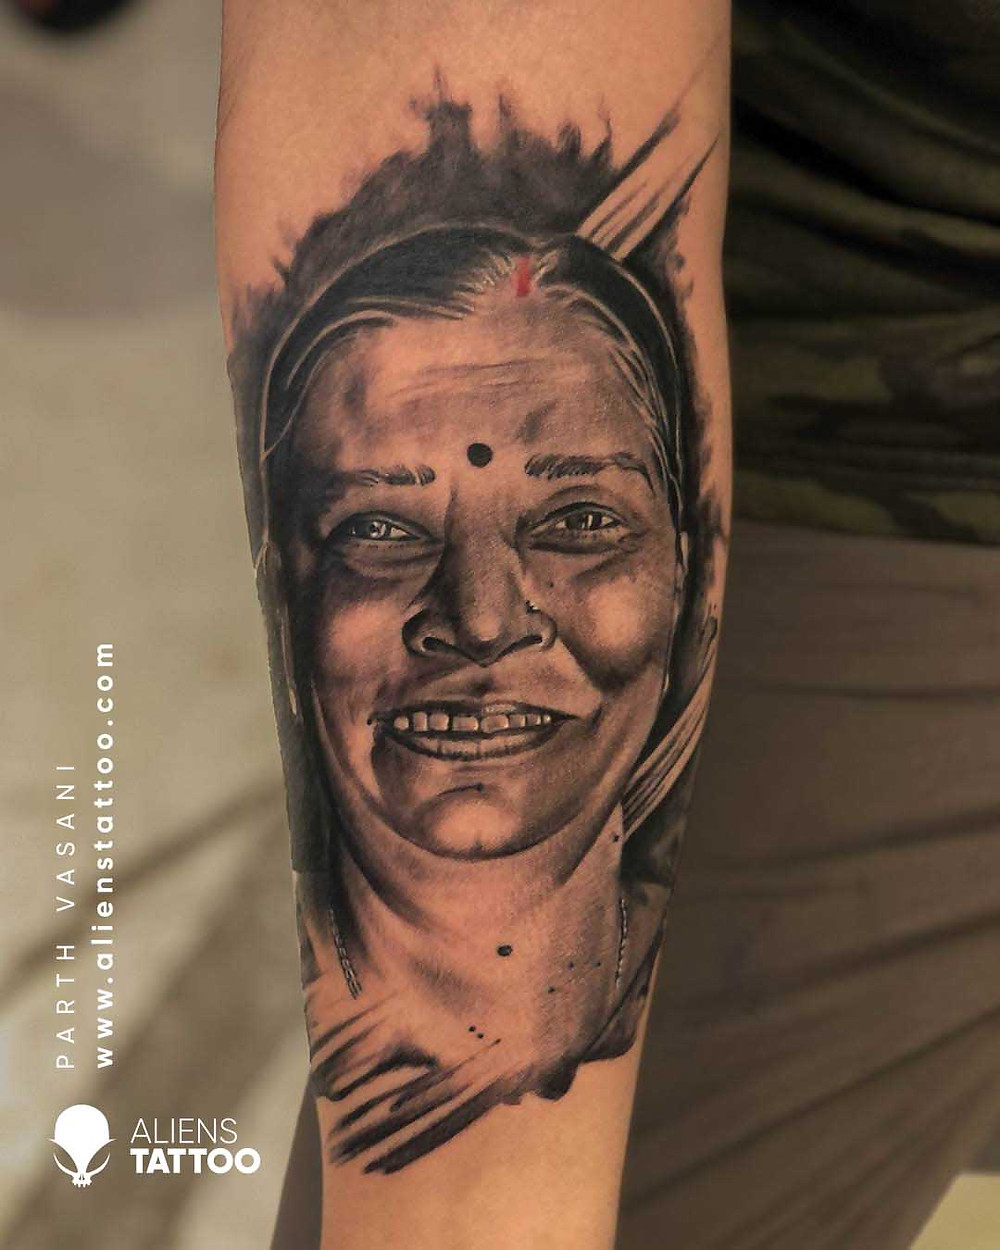 B&W Portrait Tattoo made at Aliens Tattoo Studio India